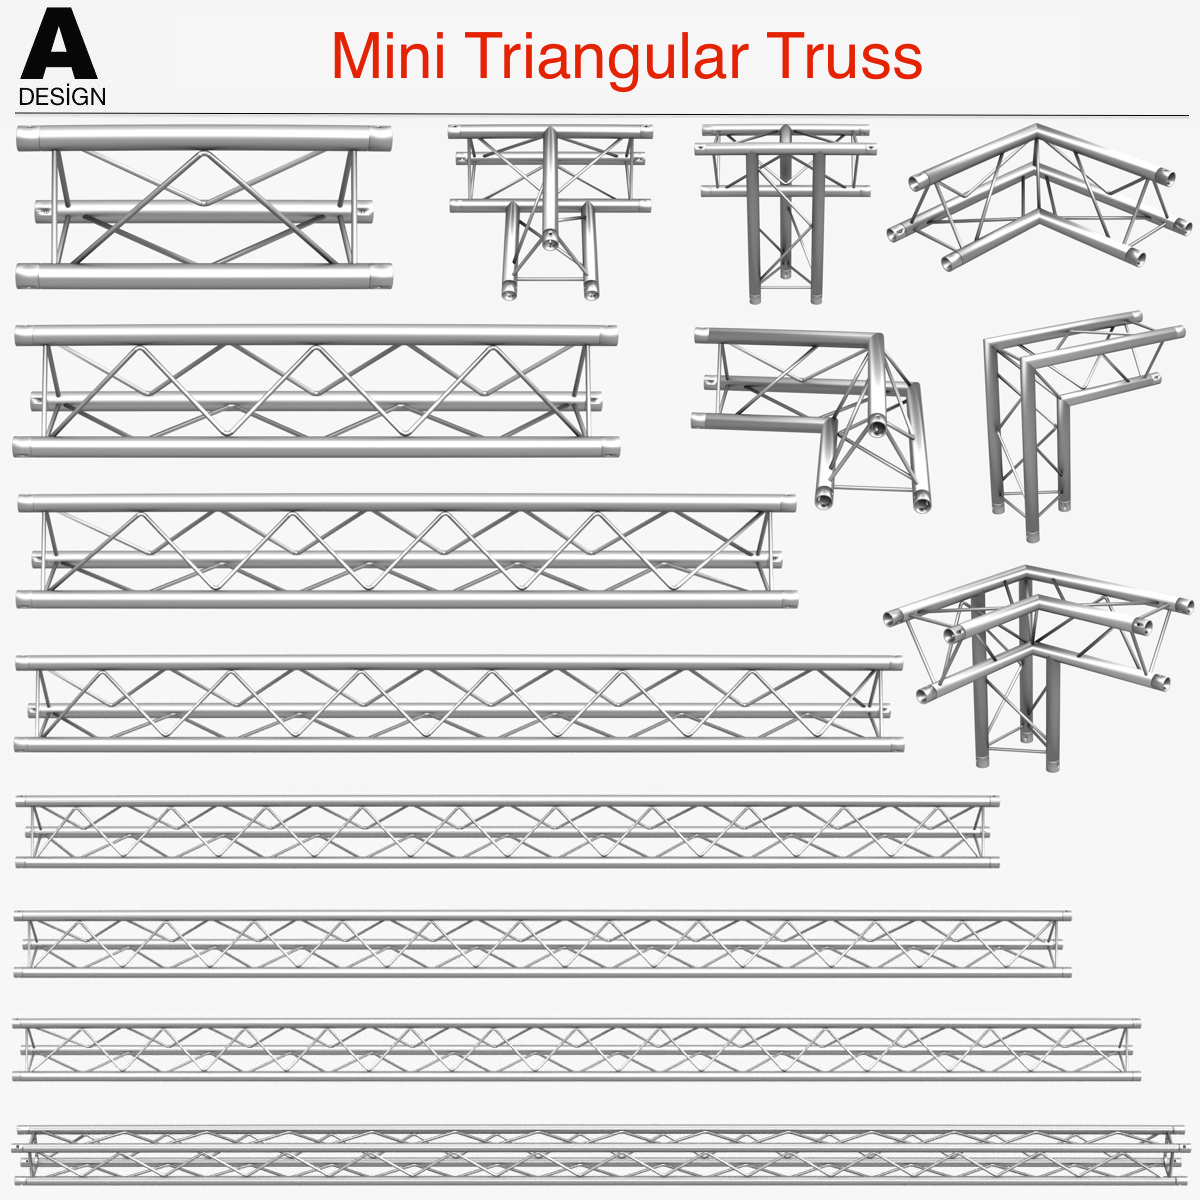 mini triangular truss (collection 14 modular) 3d model 3ds max dxf fbx c4d dae  obj 268655